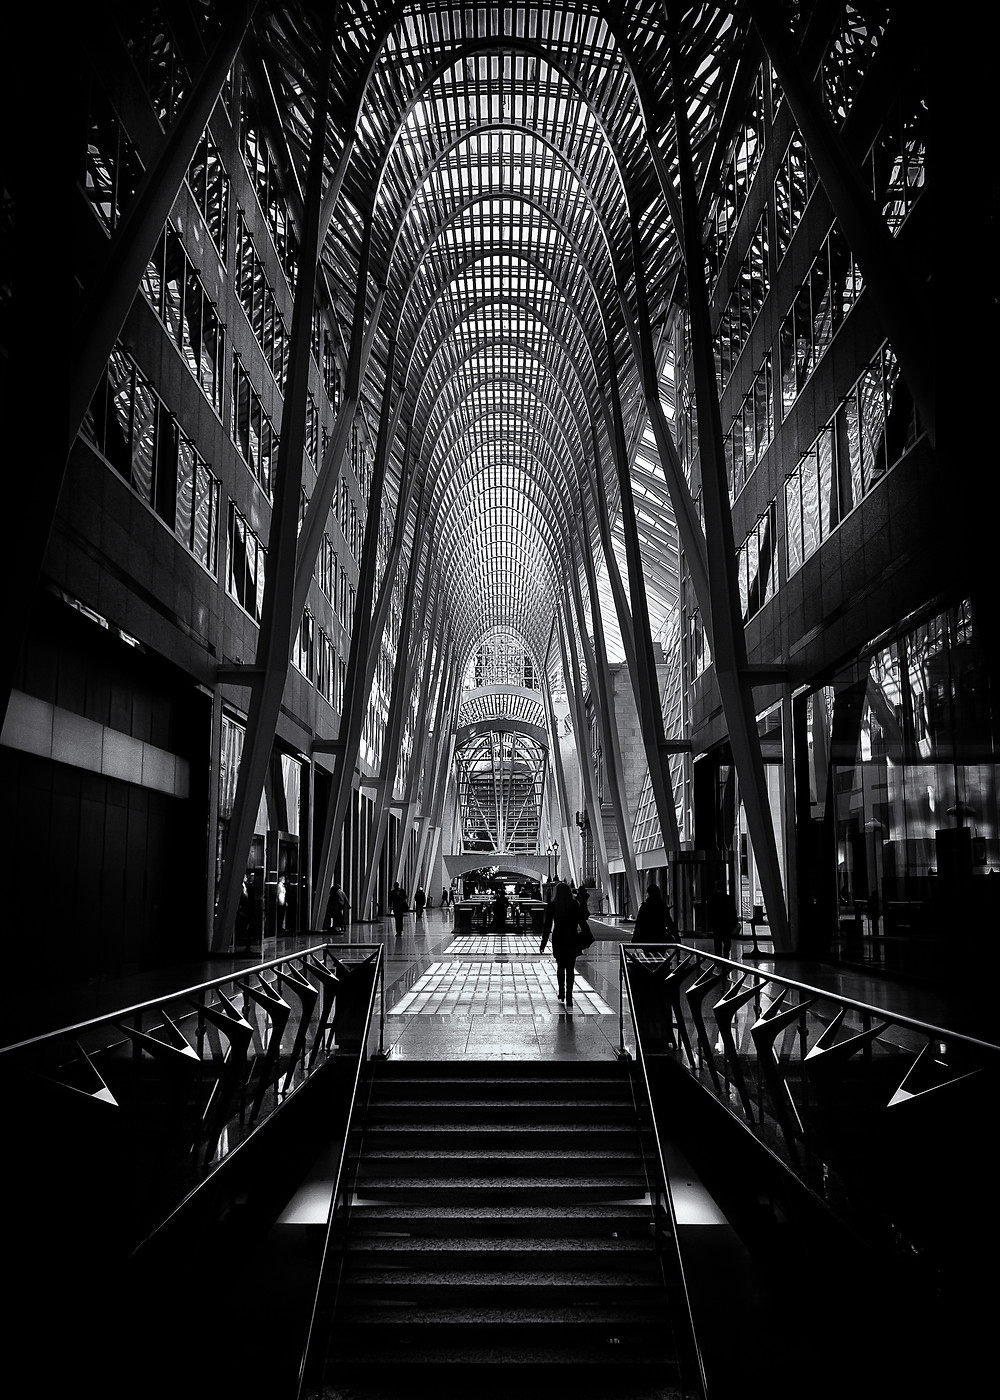 Allen Lambert Galleria  The Allen Lambert Galleria and Heritage Square was constructed after an invited design competition in 1987. The atrium is a six story high pedestrian thoroughfare that connects Bay St to the west and Yonge St to the east in the Toronto Canada financial district and is frequently used as a showcase for major photography and art exhibits.